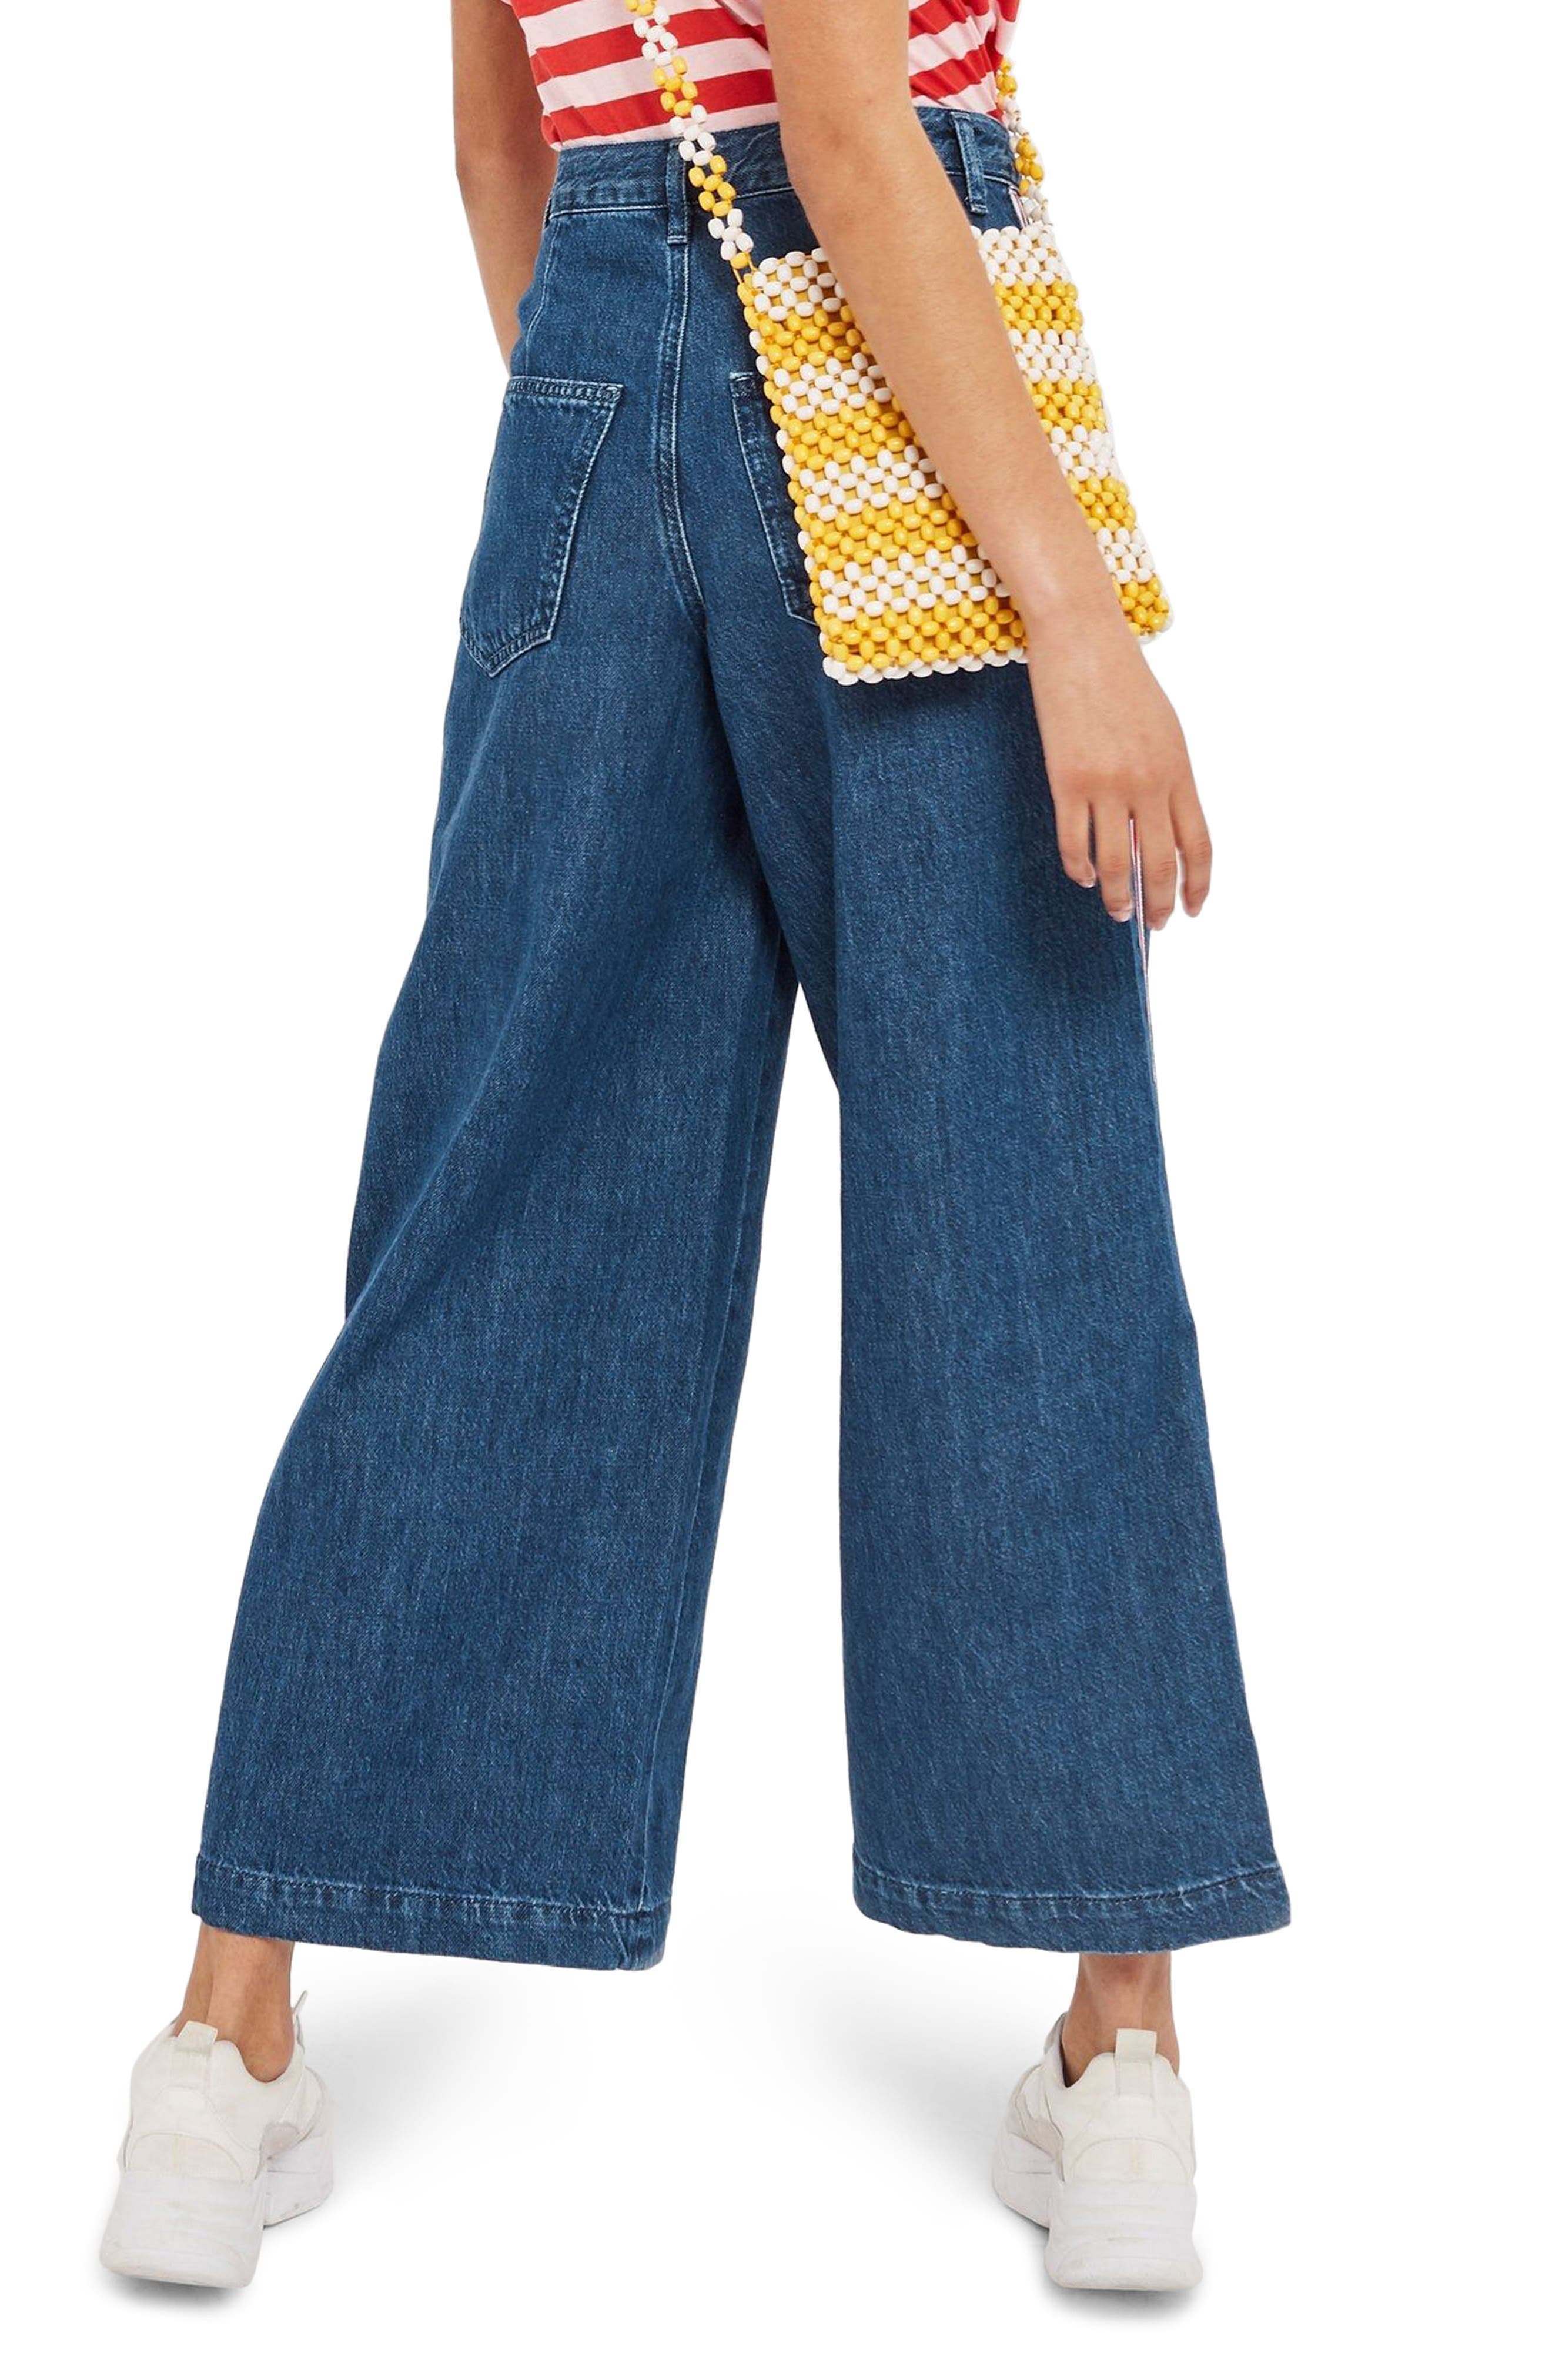 MOTO Stripe Wide Leg Non-Stretch Jeans,                             Alternate thumbnail 2, color,                             Blue Multi